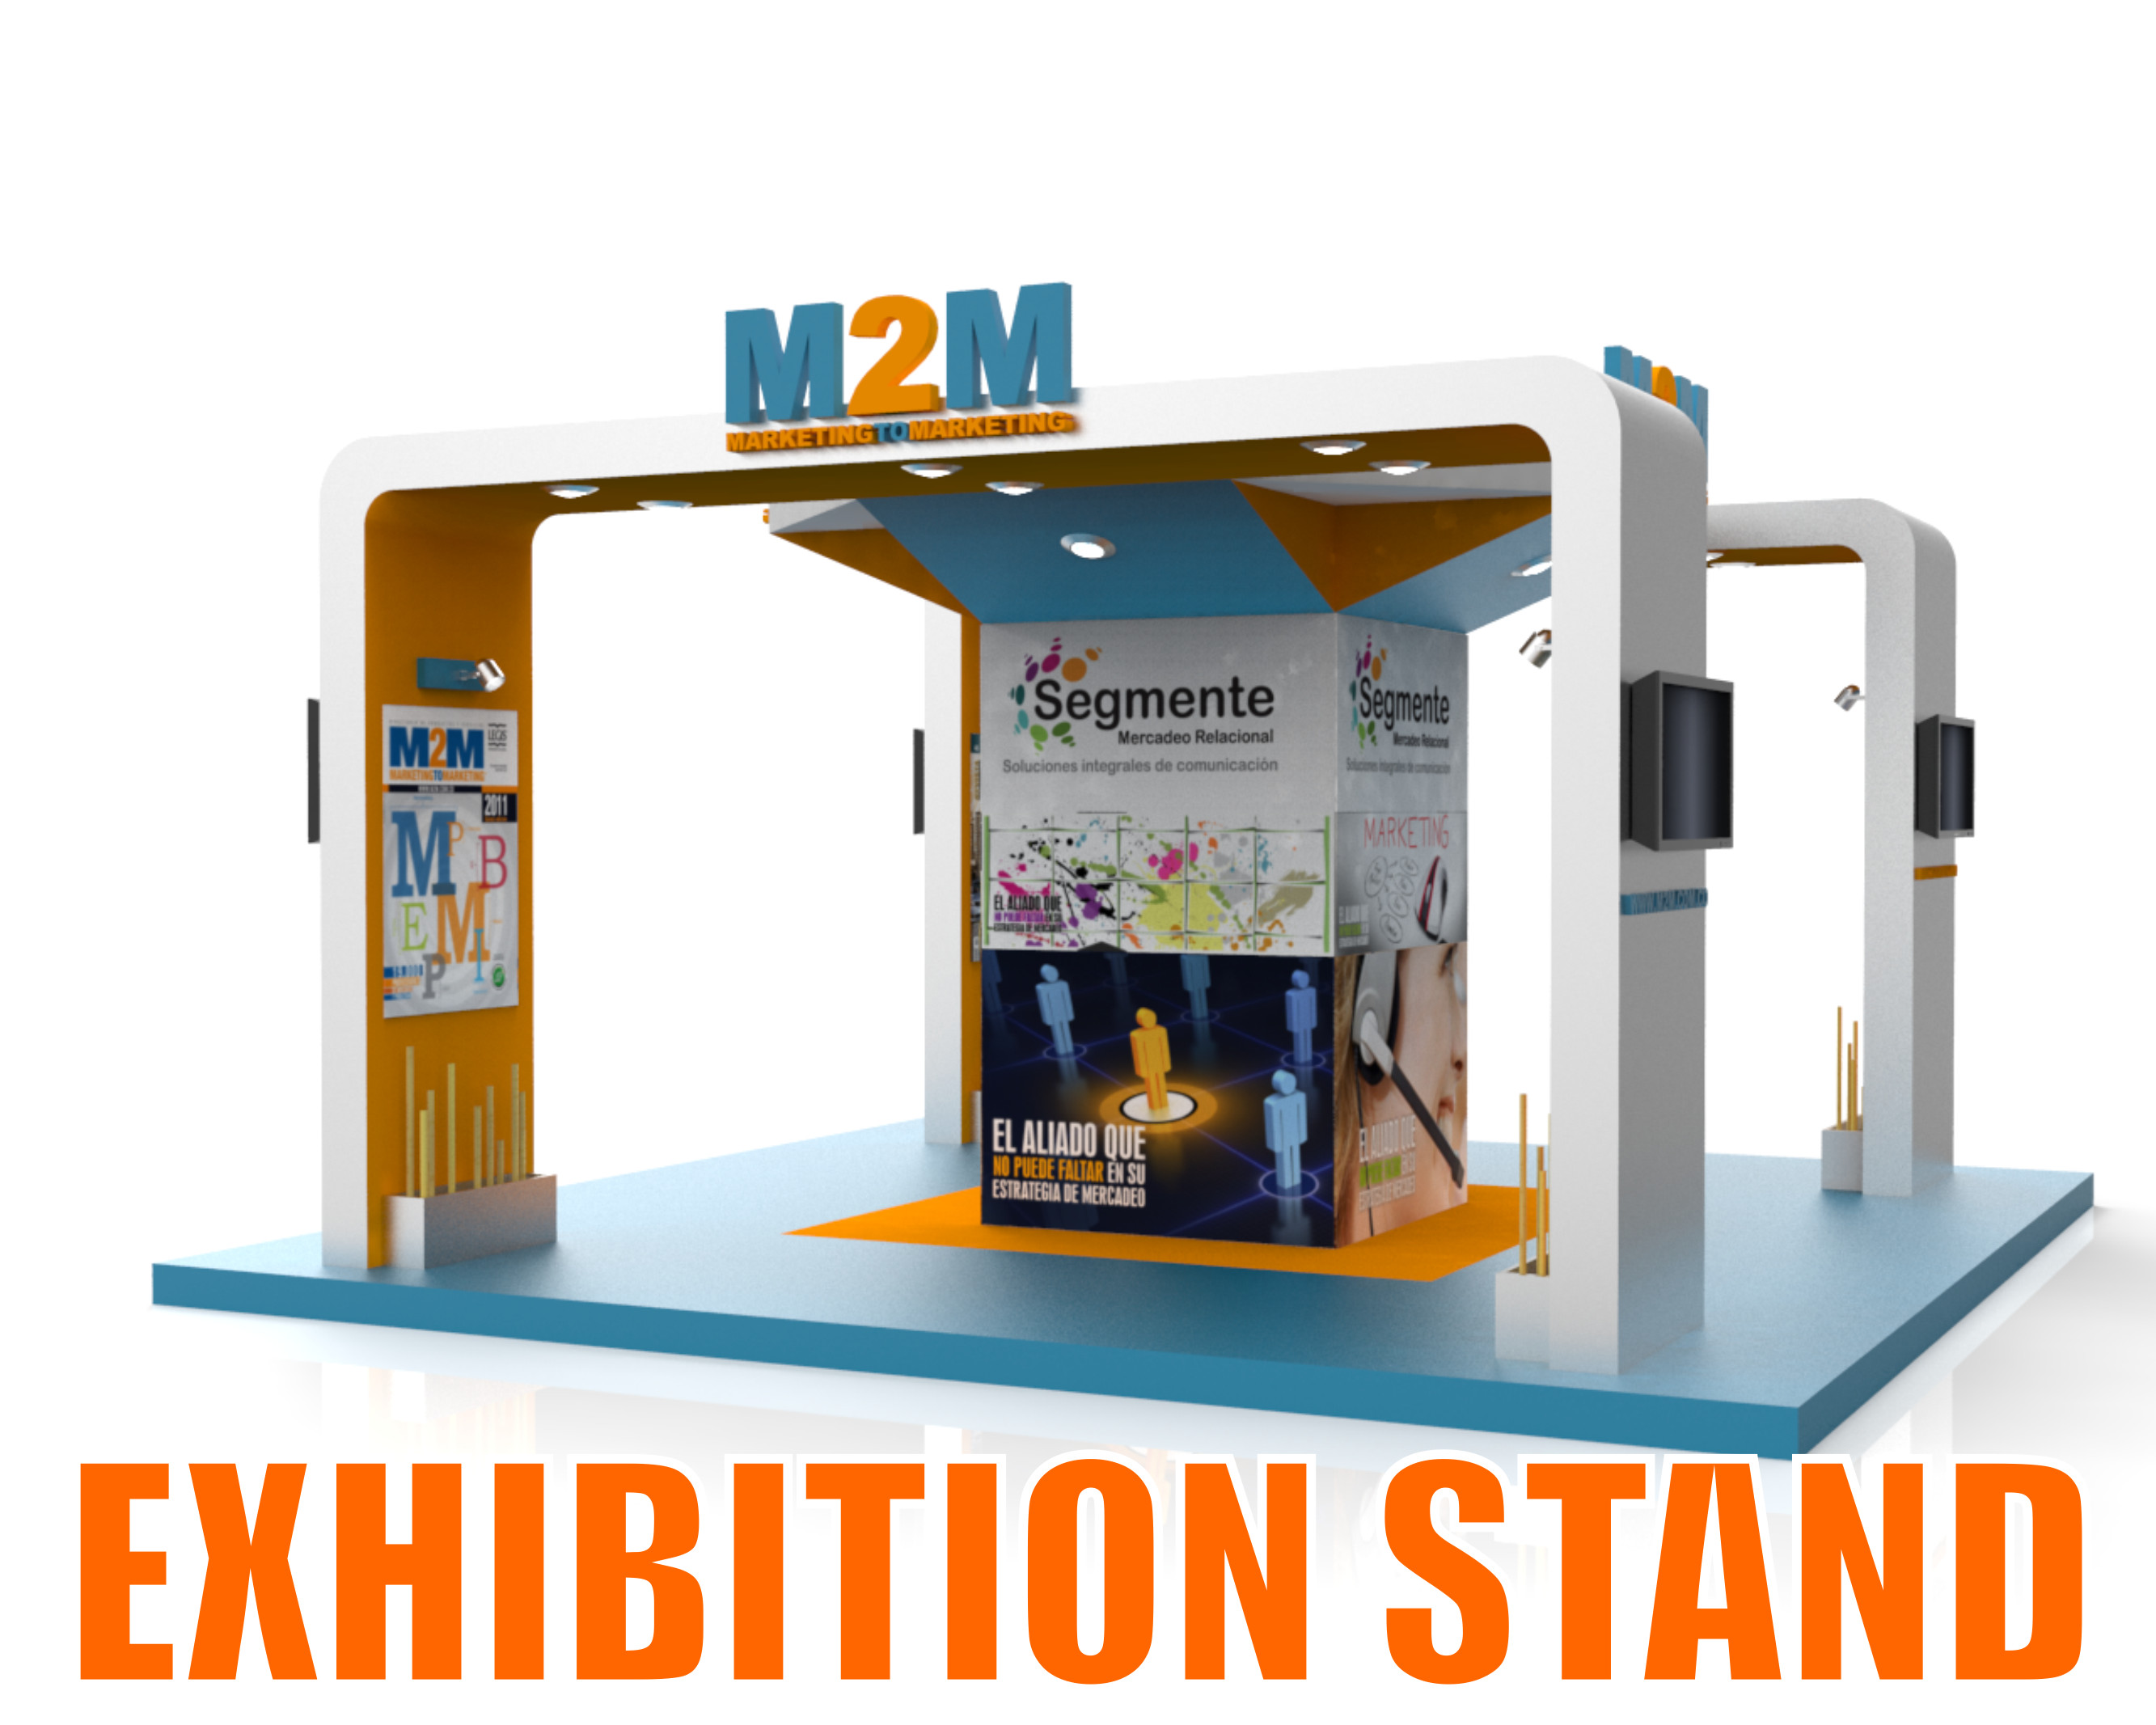 Exhibition Stand 3d Model Sketchup : D model exhibition stand